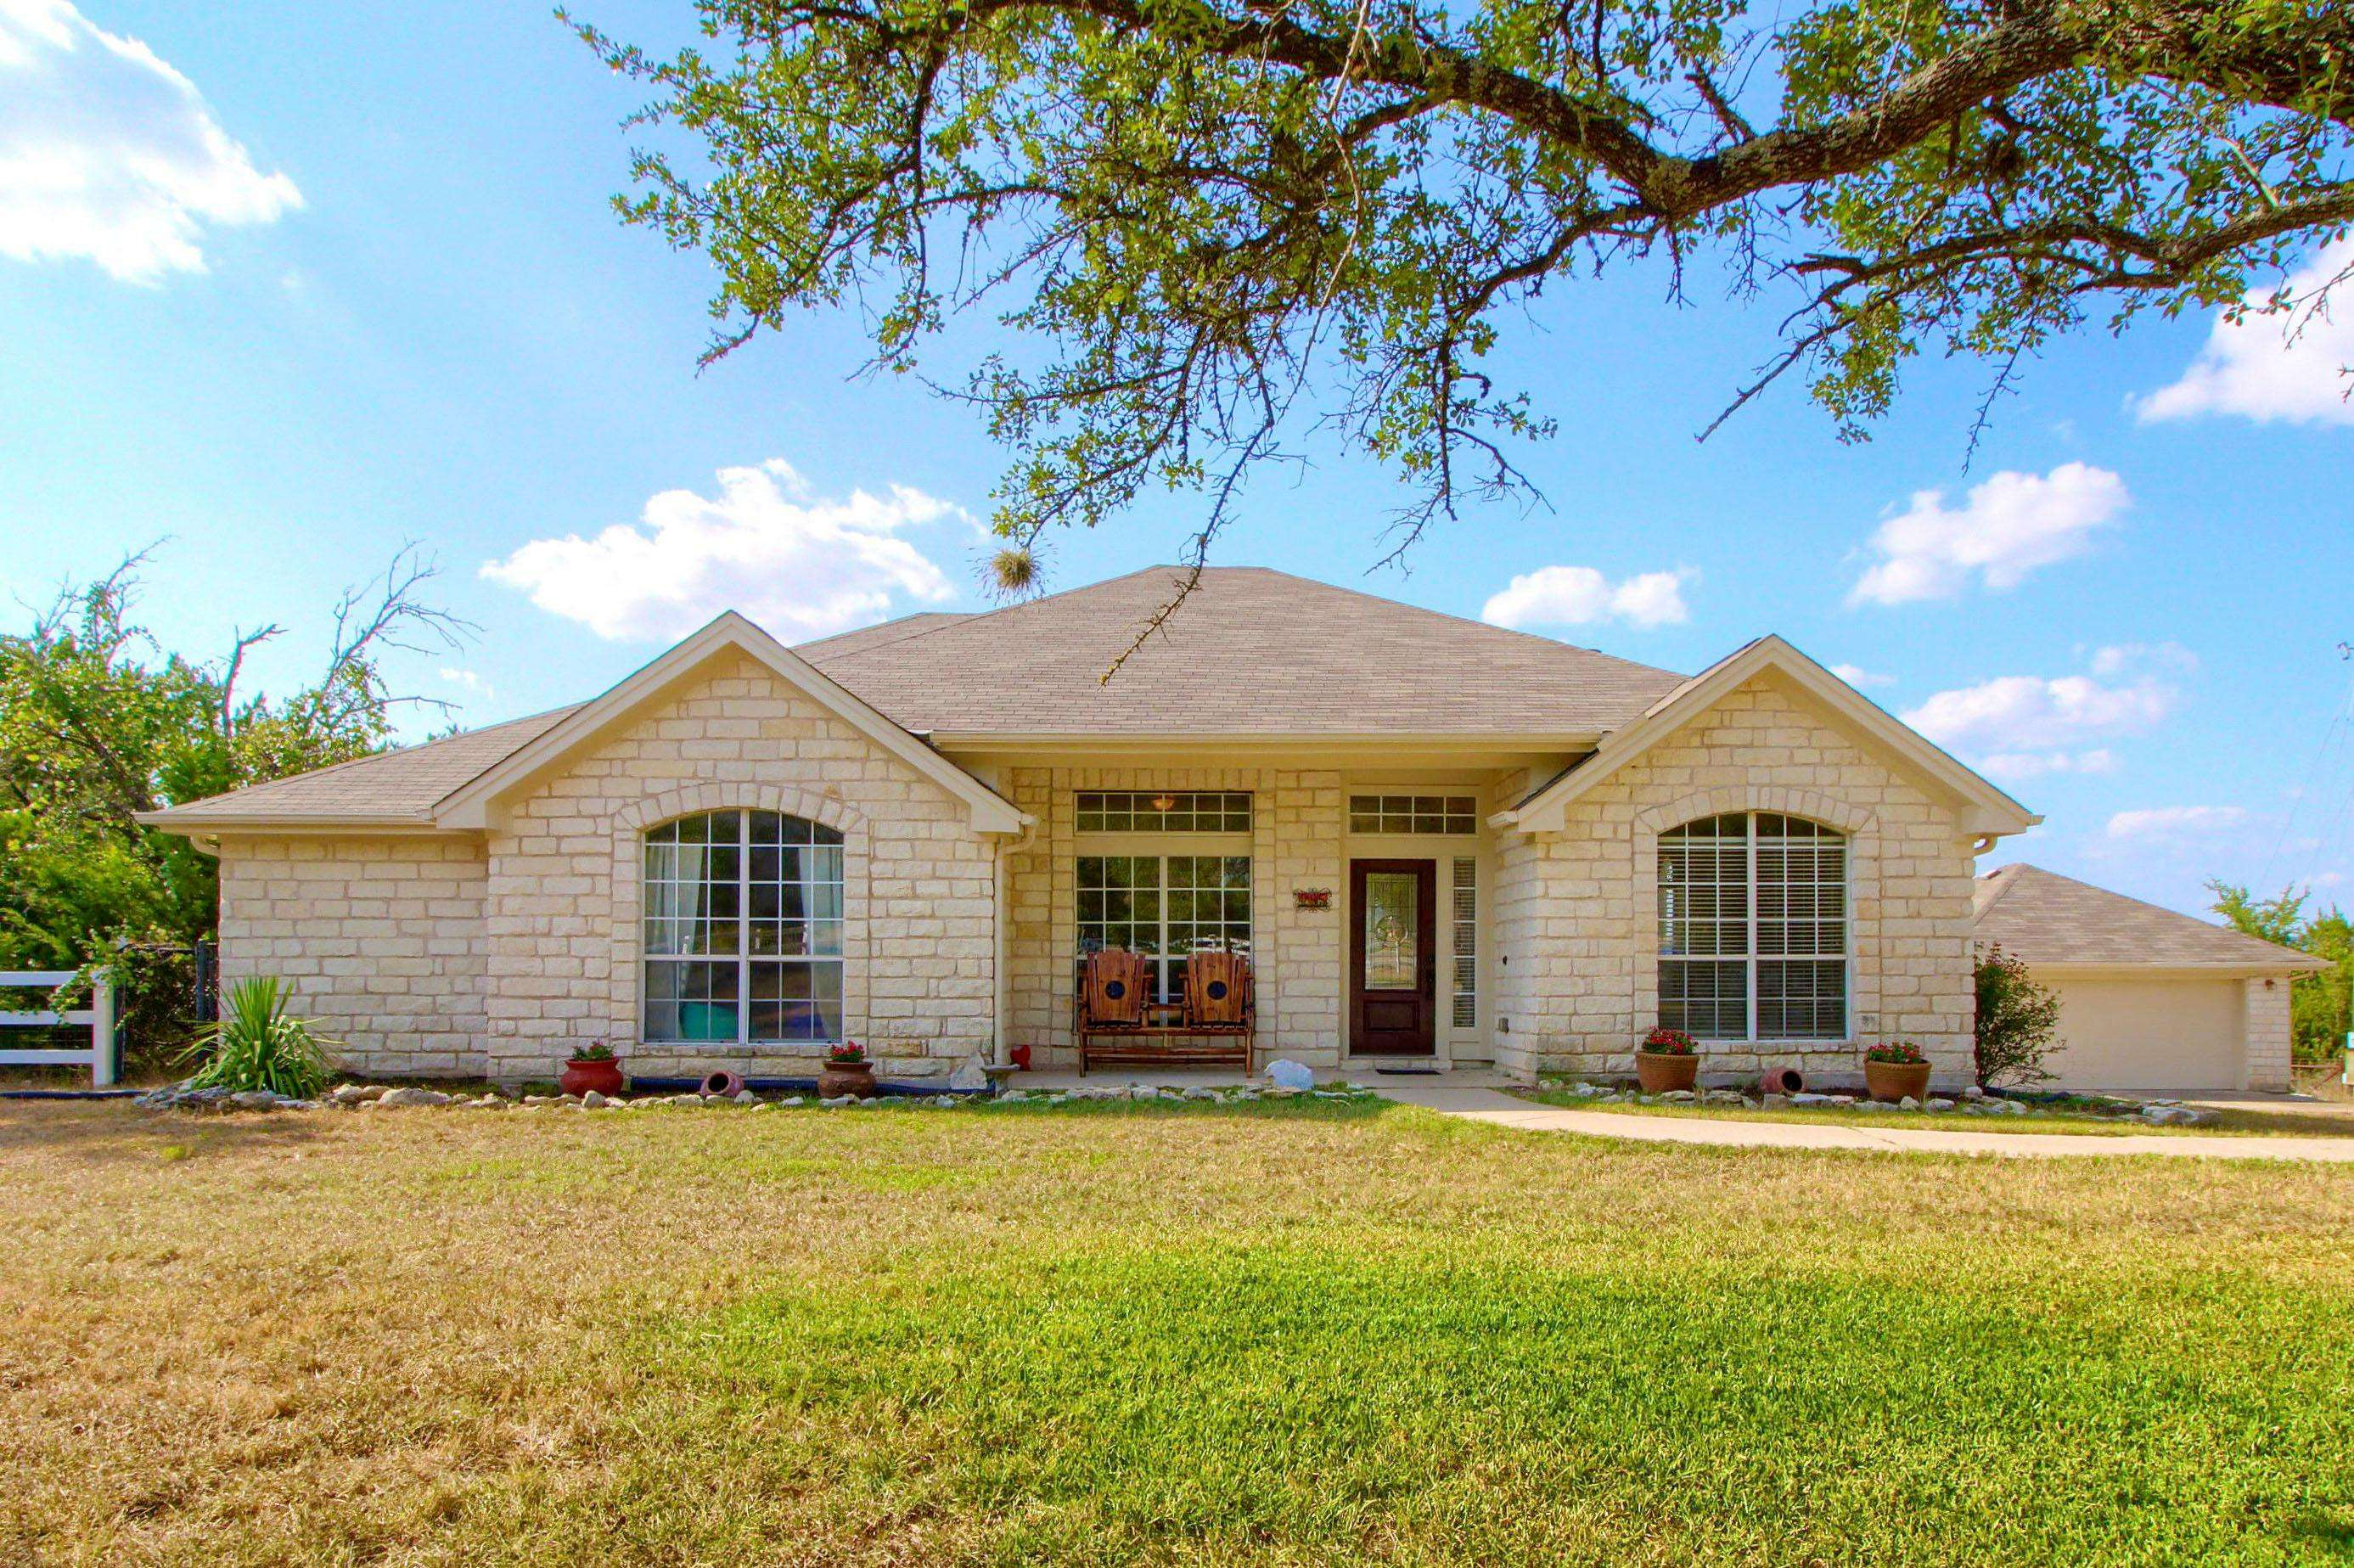 285 N. Showhorse Drive home for sale